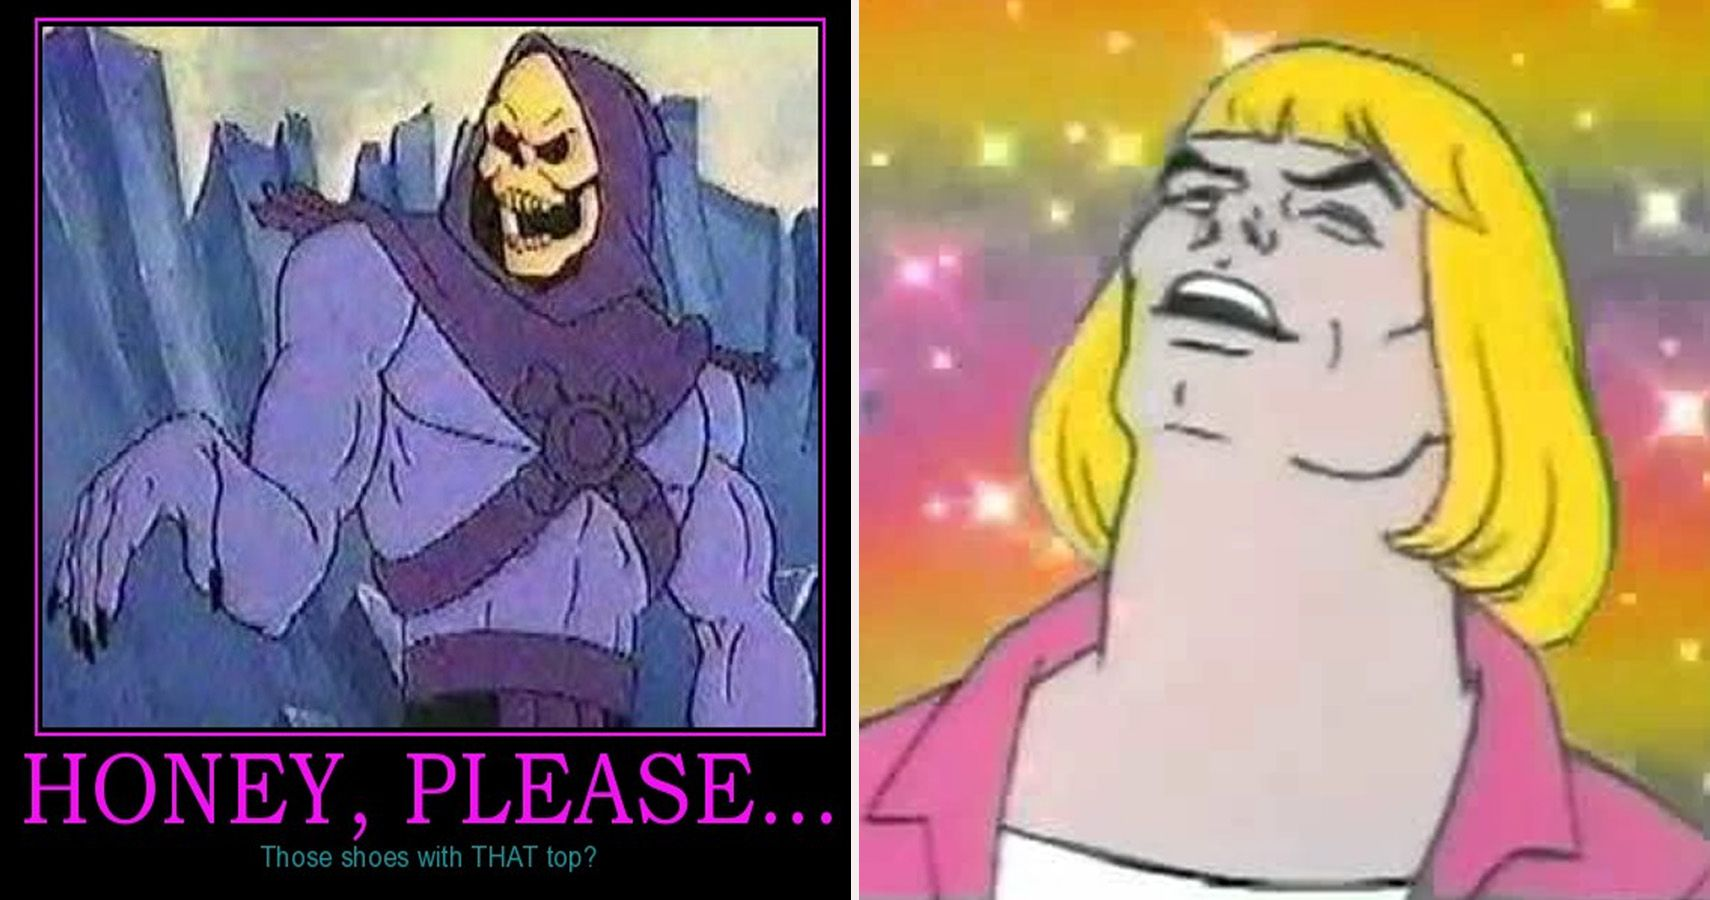 27 Hilarious He Man Memes Only True Fans Will Understand Check out our skeletor meme selection for the very best in unique or custom, handmade pieces from our shops. hilarious he man memes only true fans